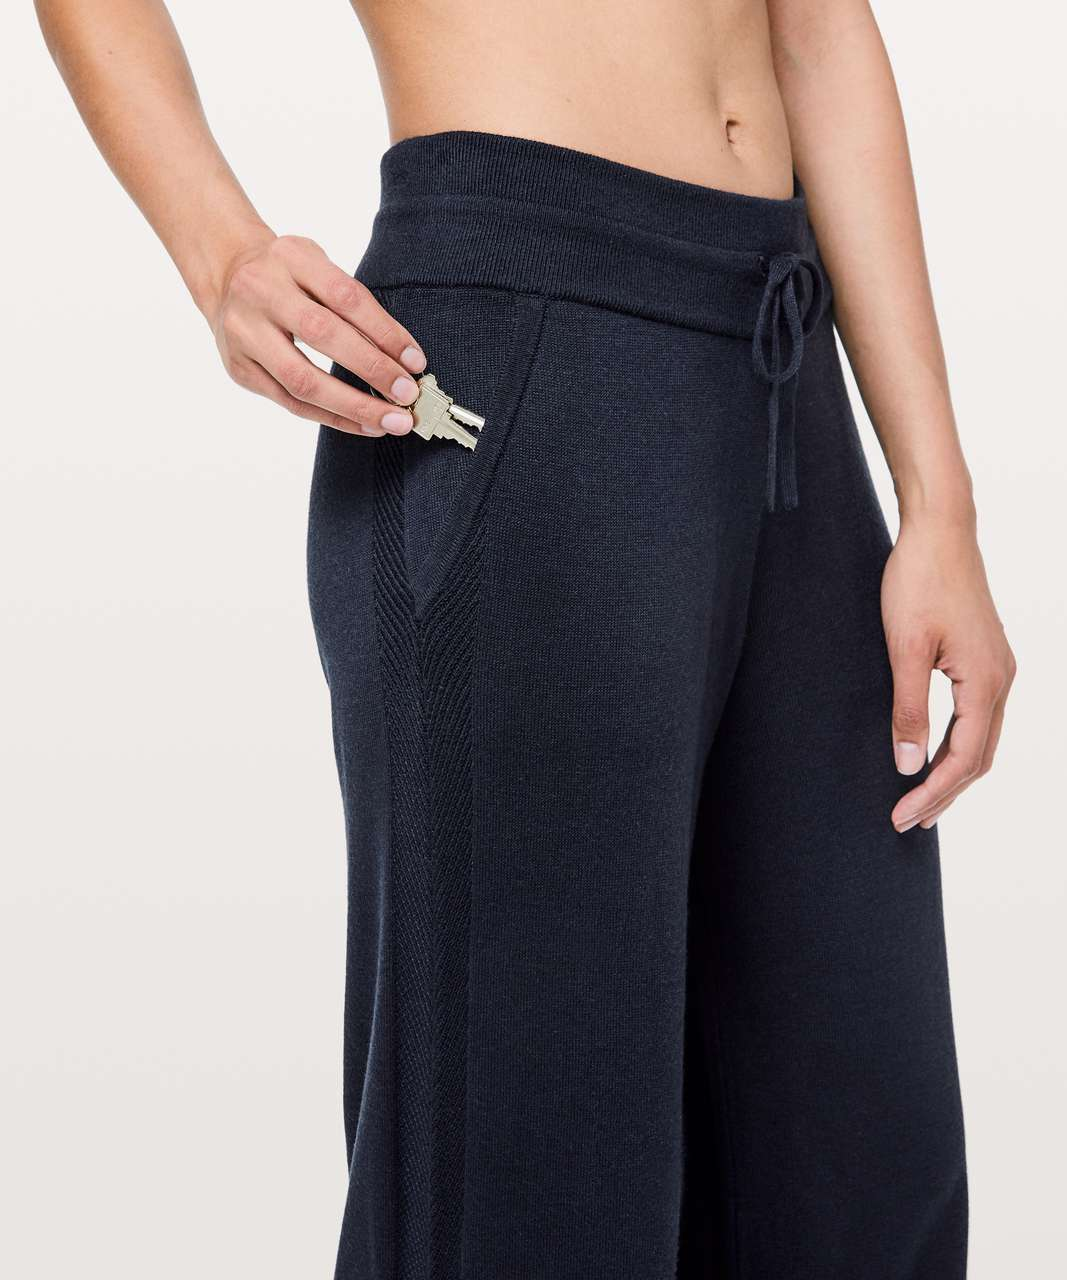 Lululemon In The Comfort Zone Pant - True Navy